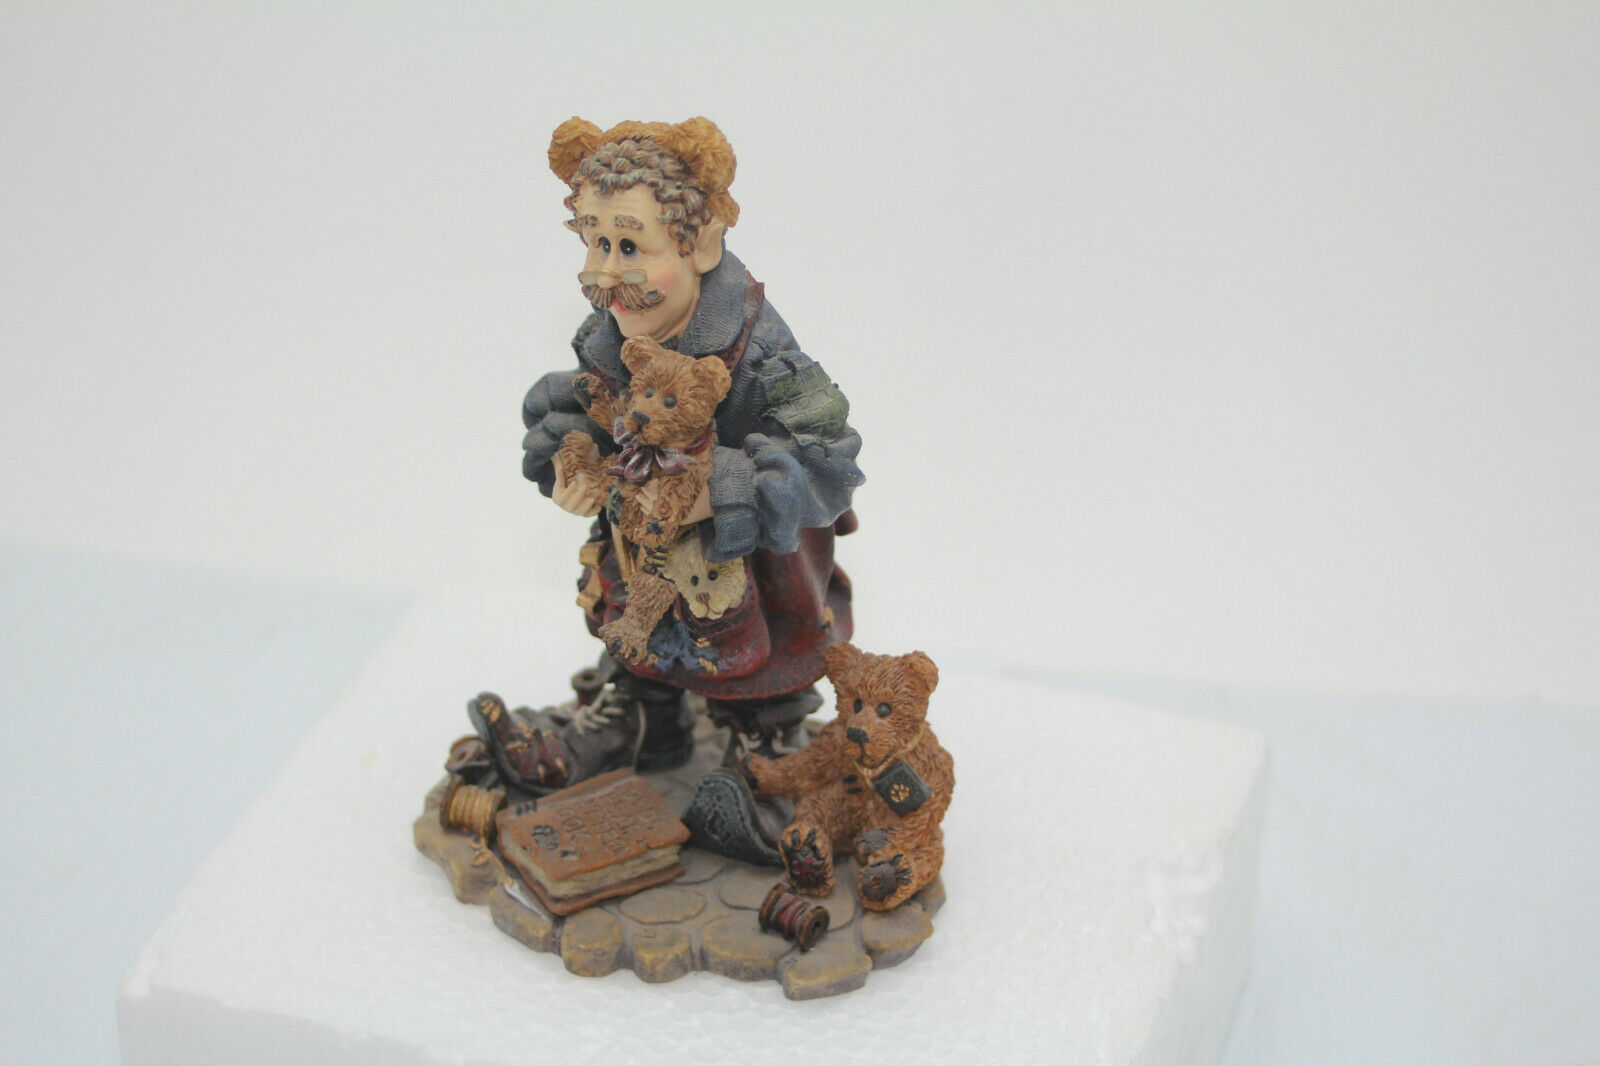 The Boyds Collection #36400 T.H Beam The Bearmaker Elf image 2